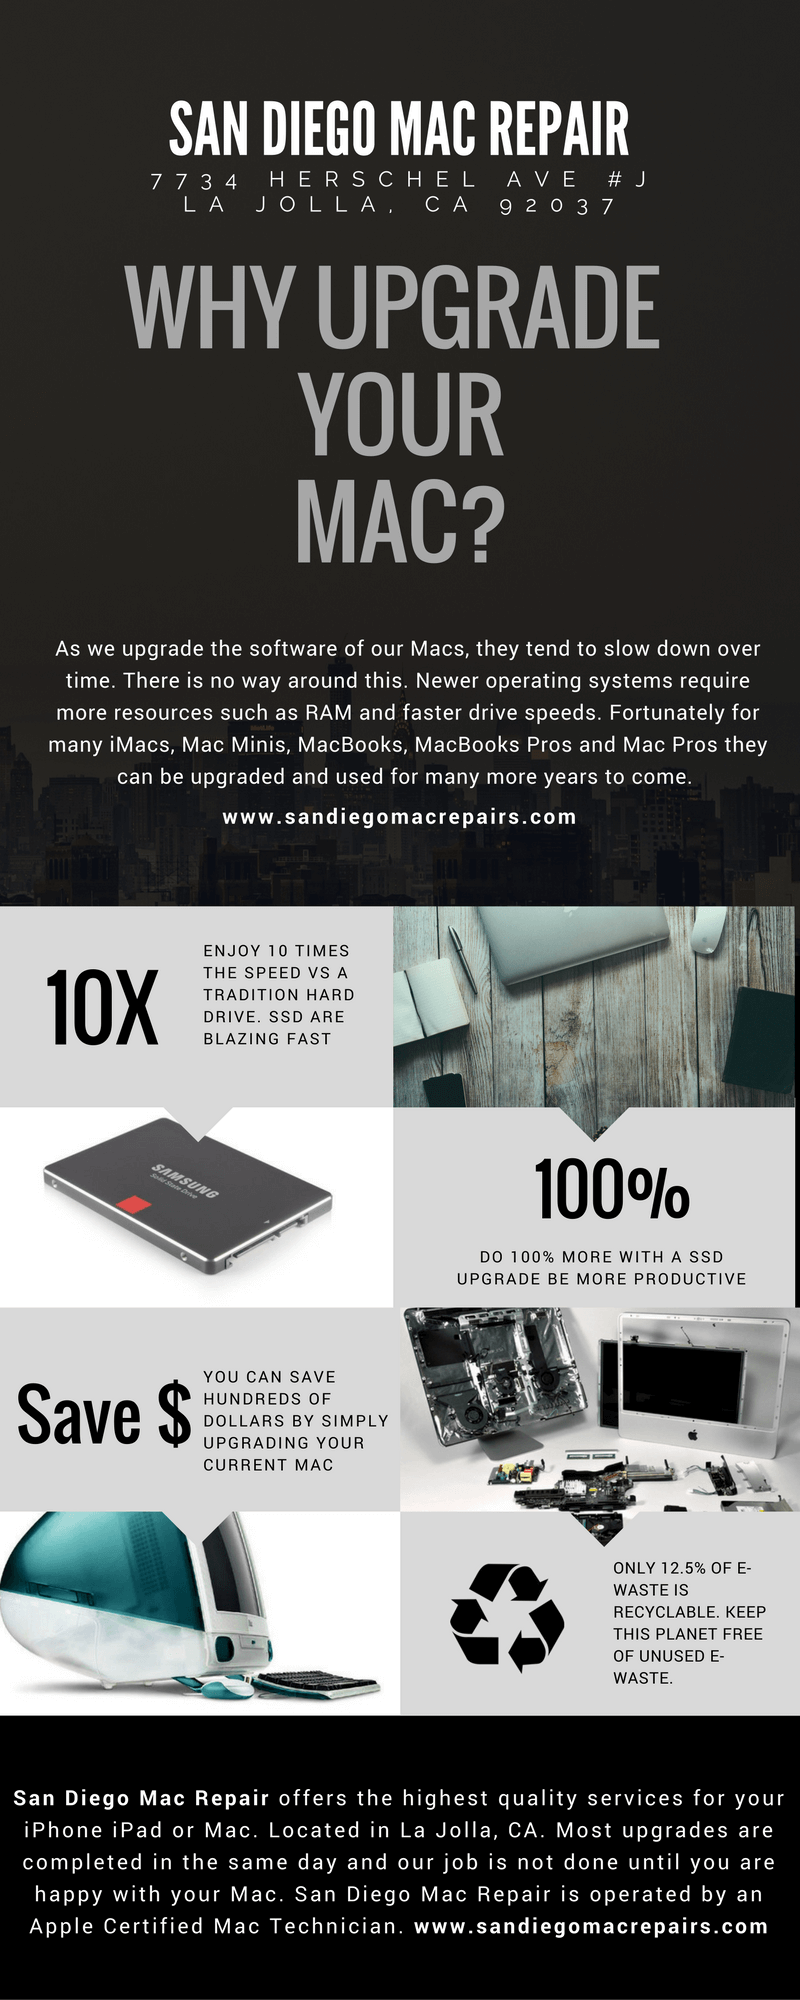 san diego mac repair infograph why upgrade your mac. macbook ssd ugprade done by apple certified mac technician visit san diego mac repair in la jolla. same day installation choose your storage.